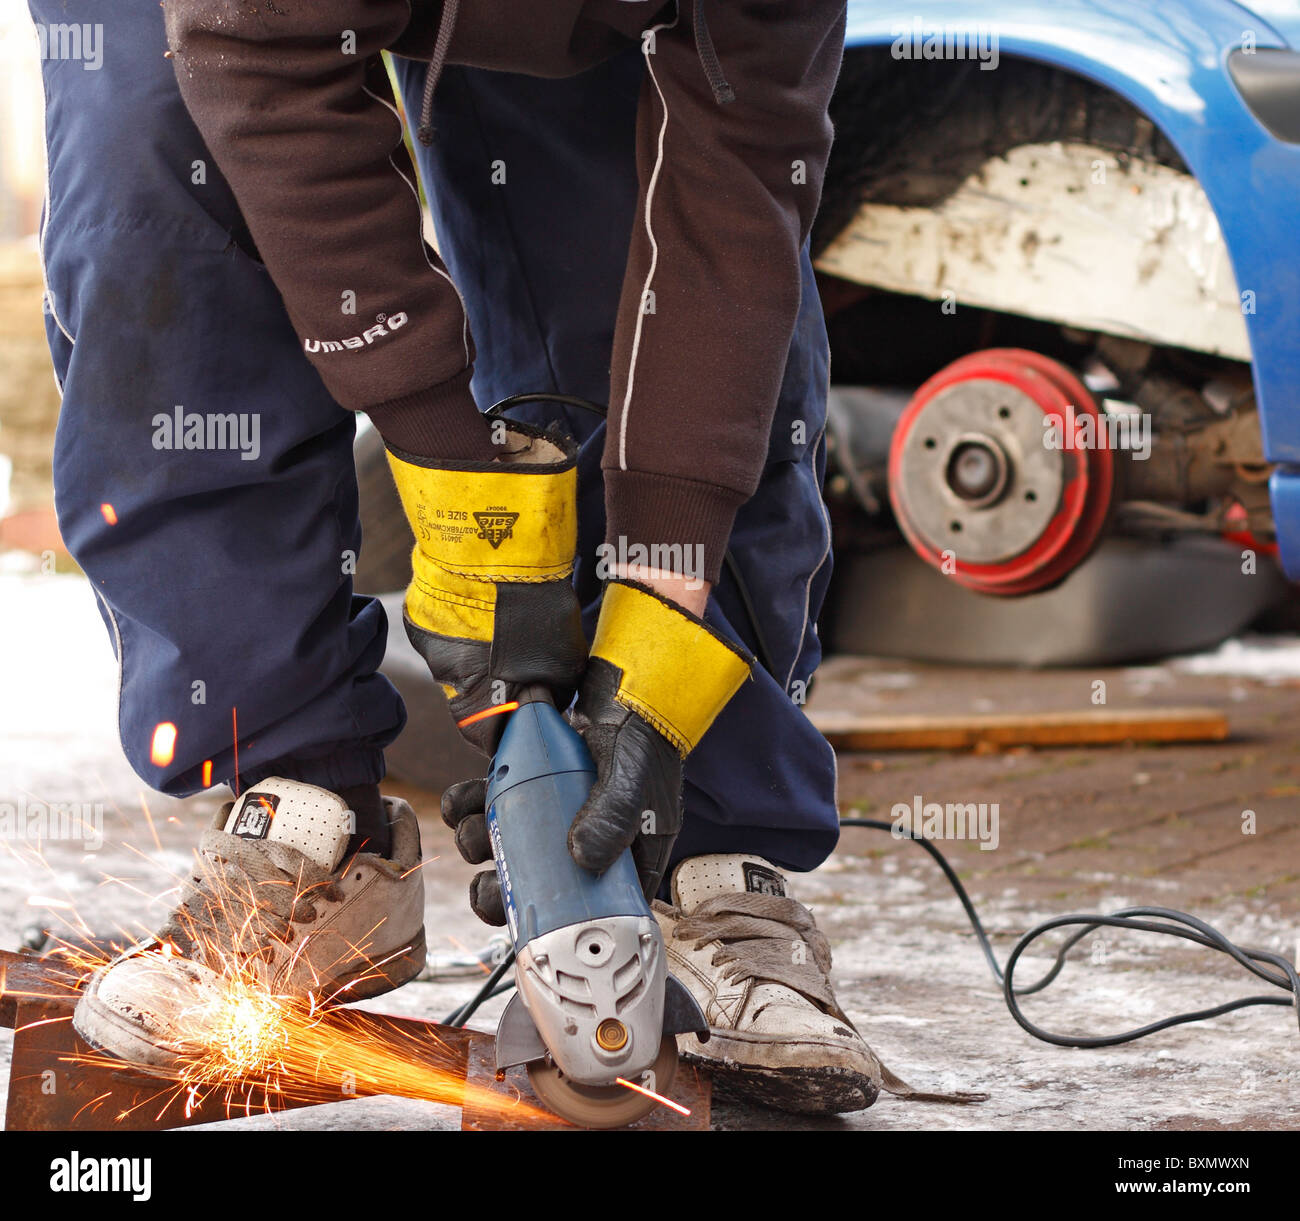 A teenage male using an angle grinder whilst working on repairing the chassis of a car, wearing protective gloves. - Stock Image